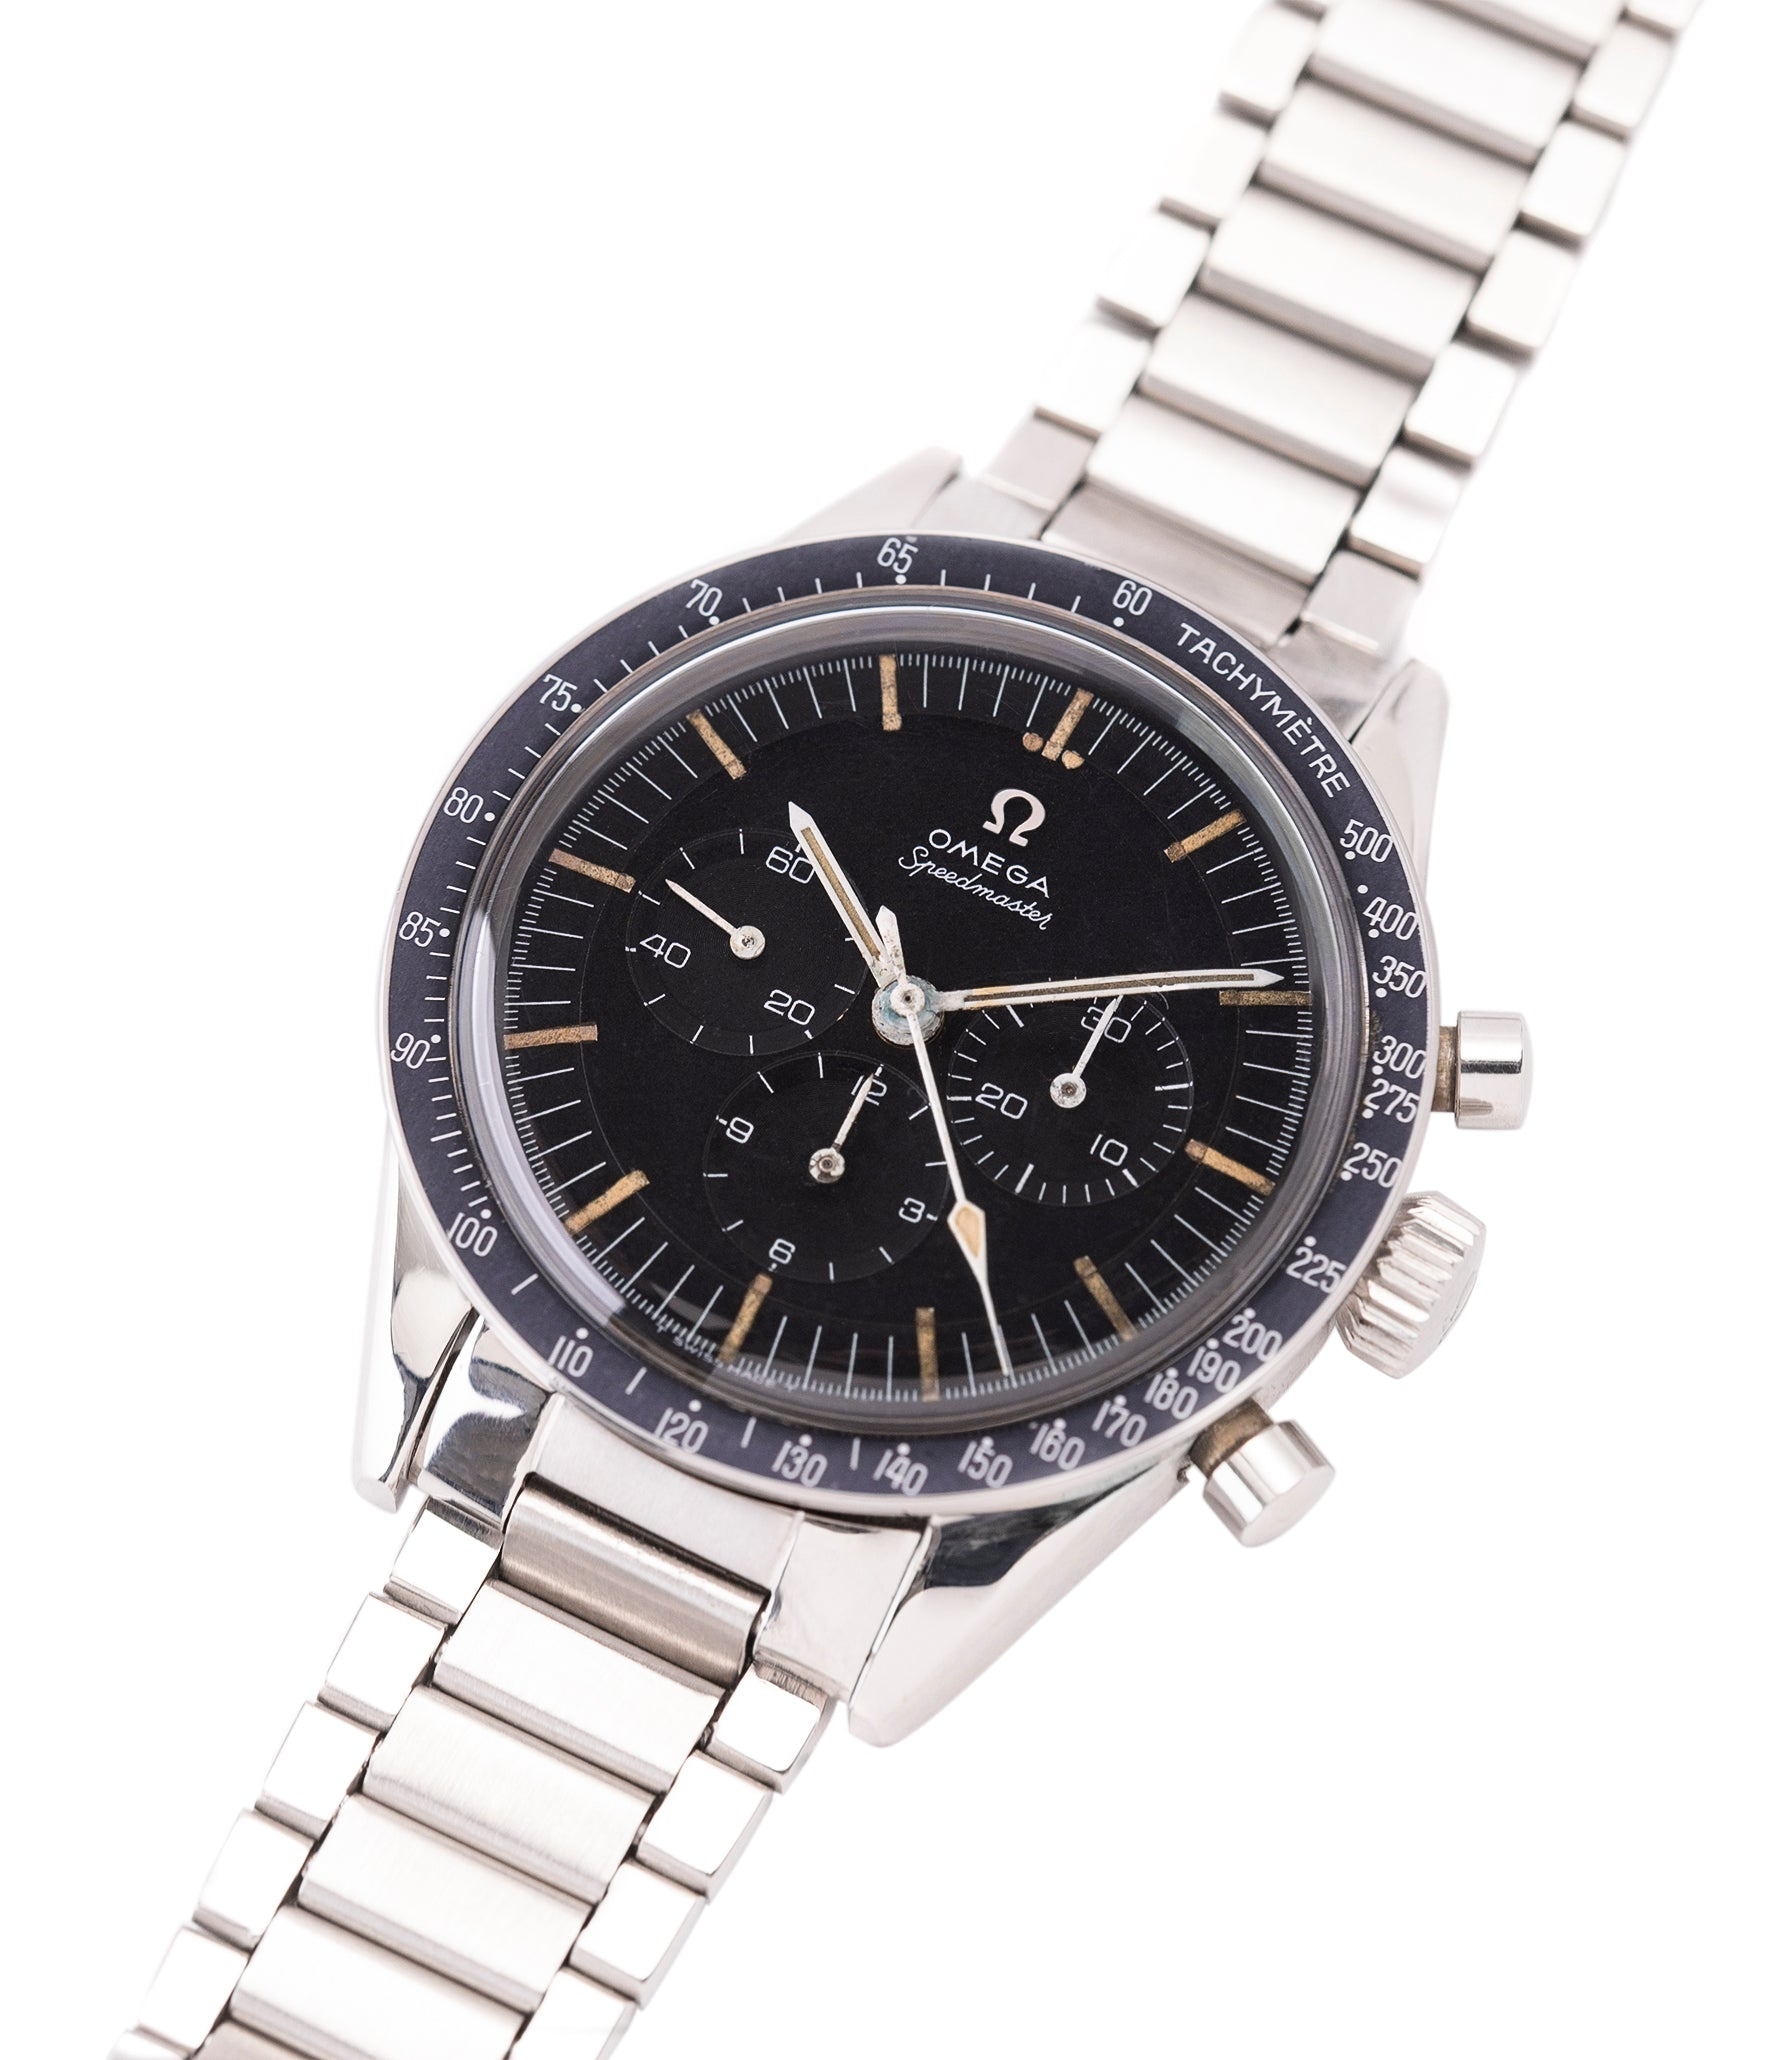 buy Omega Speedmaster Pre-Professional Ed White 105003 steel vintage chronograph 7912 flat-link bracelet for sale online at A Collected Man UK specialist of rare vintage watches